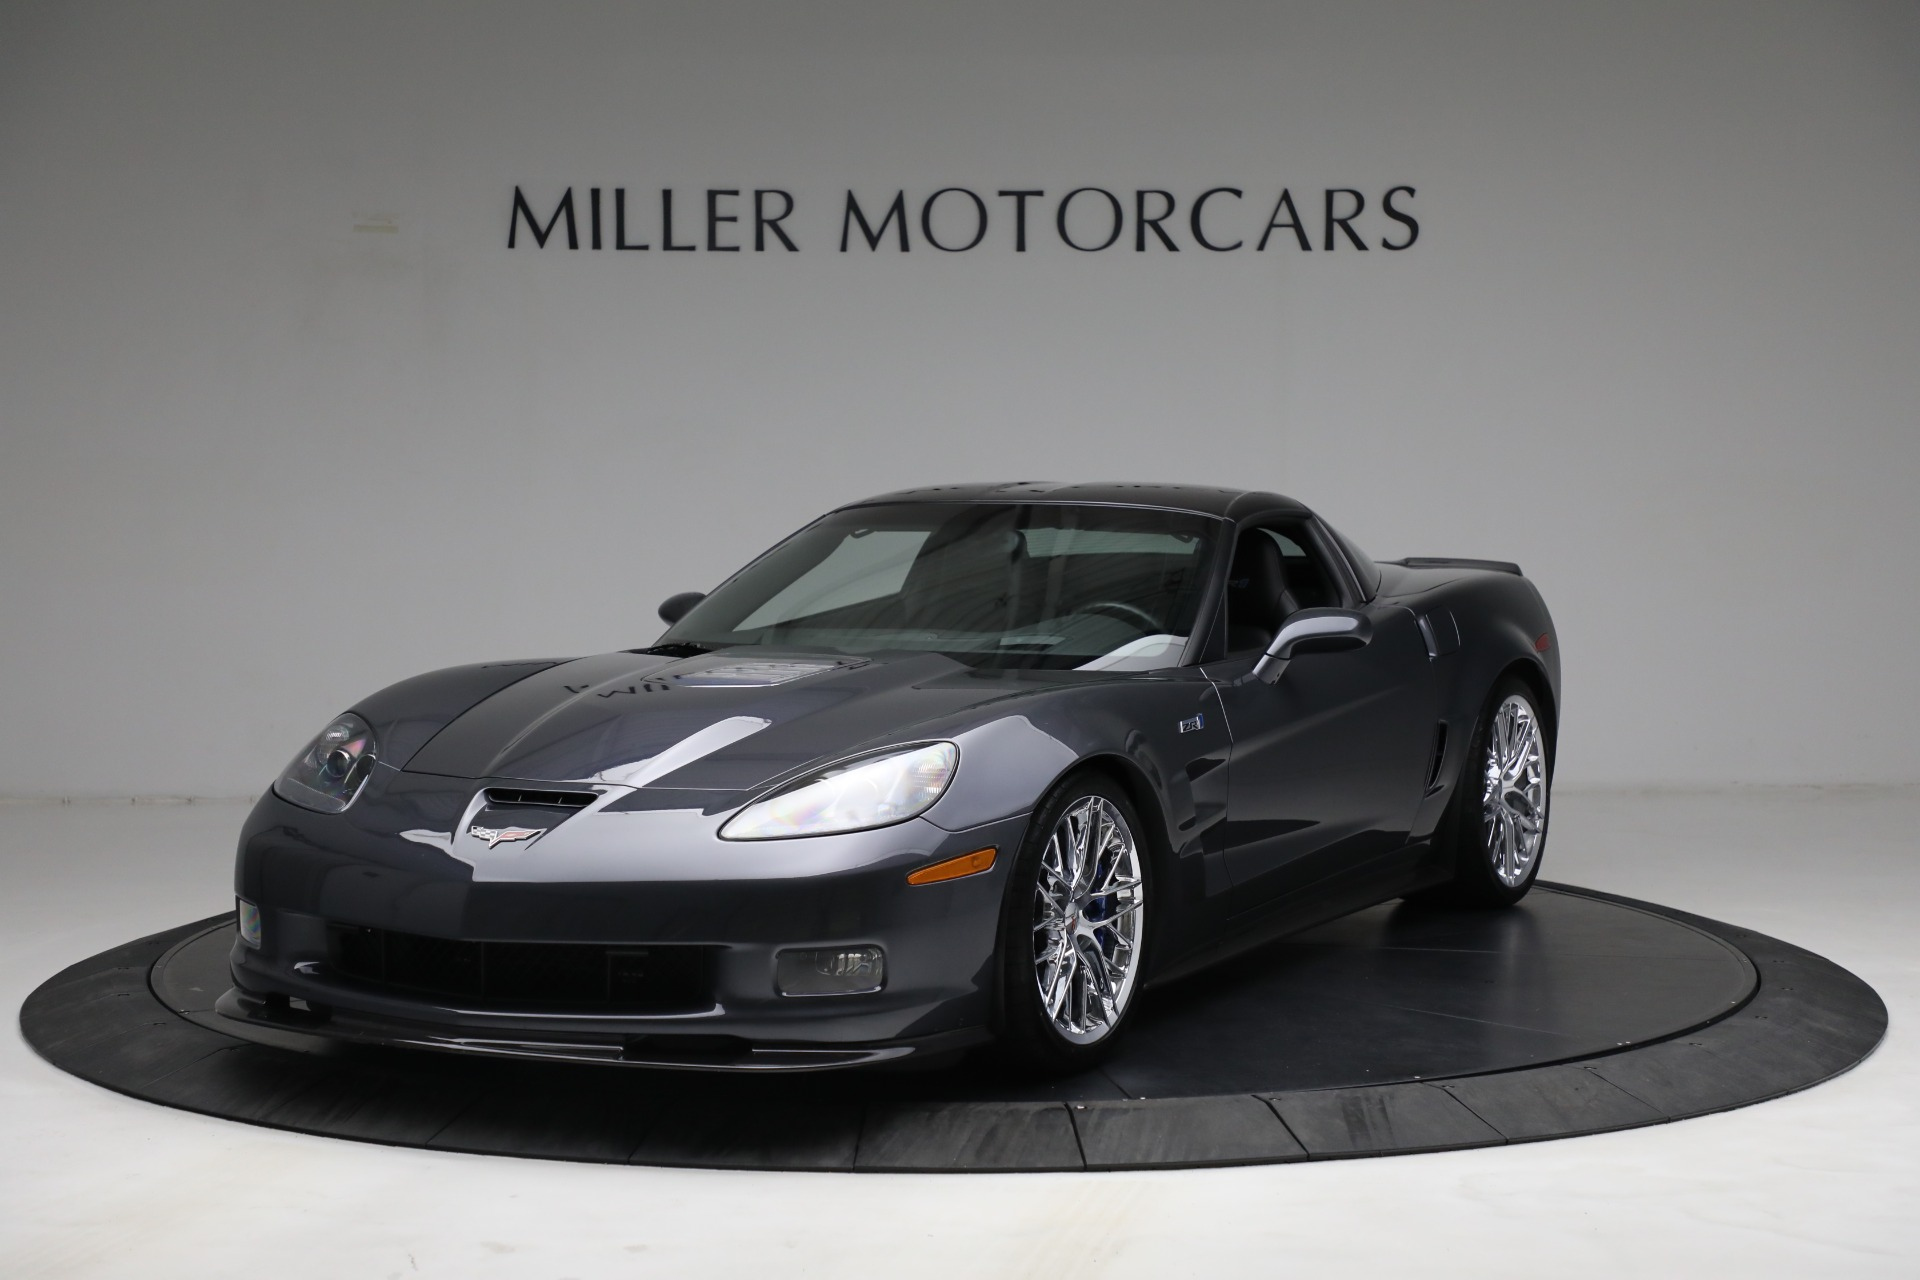 Used 2010 Chevrolet Corvette ZR1 for sale $85,900 at Pagani of Greenwich in Greenwich CT 06830 1